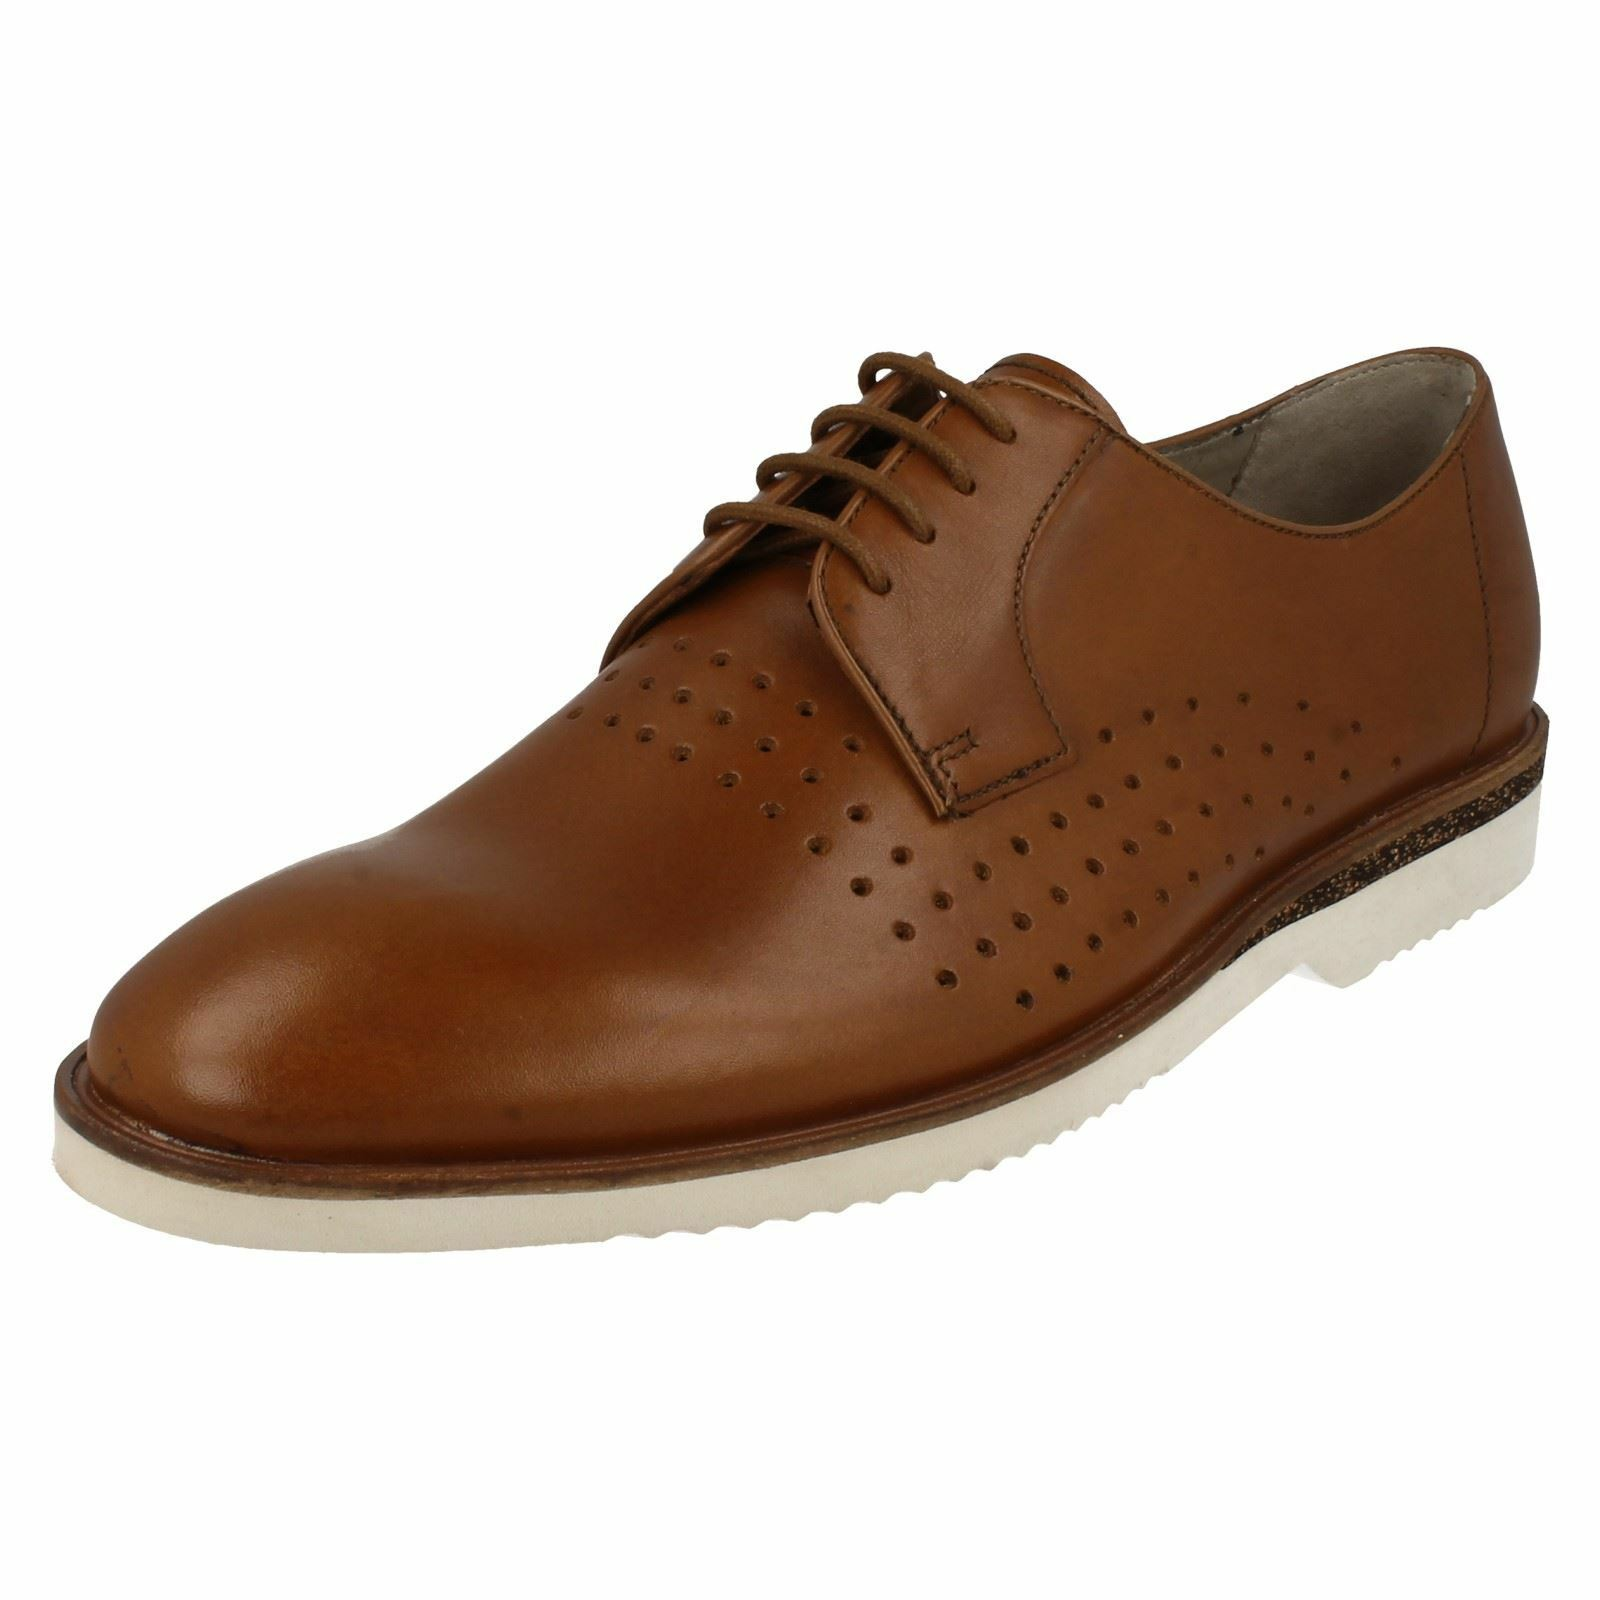 CLARKS Tulik Edge Mens Tan Leather Lace Up